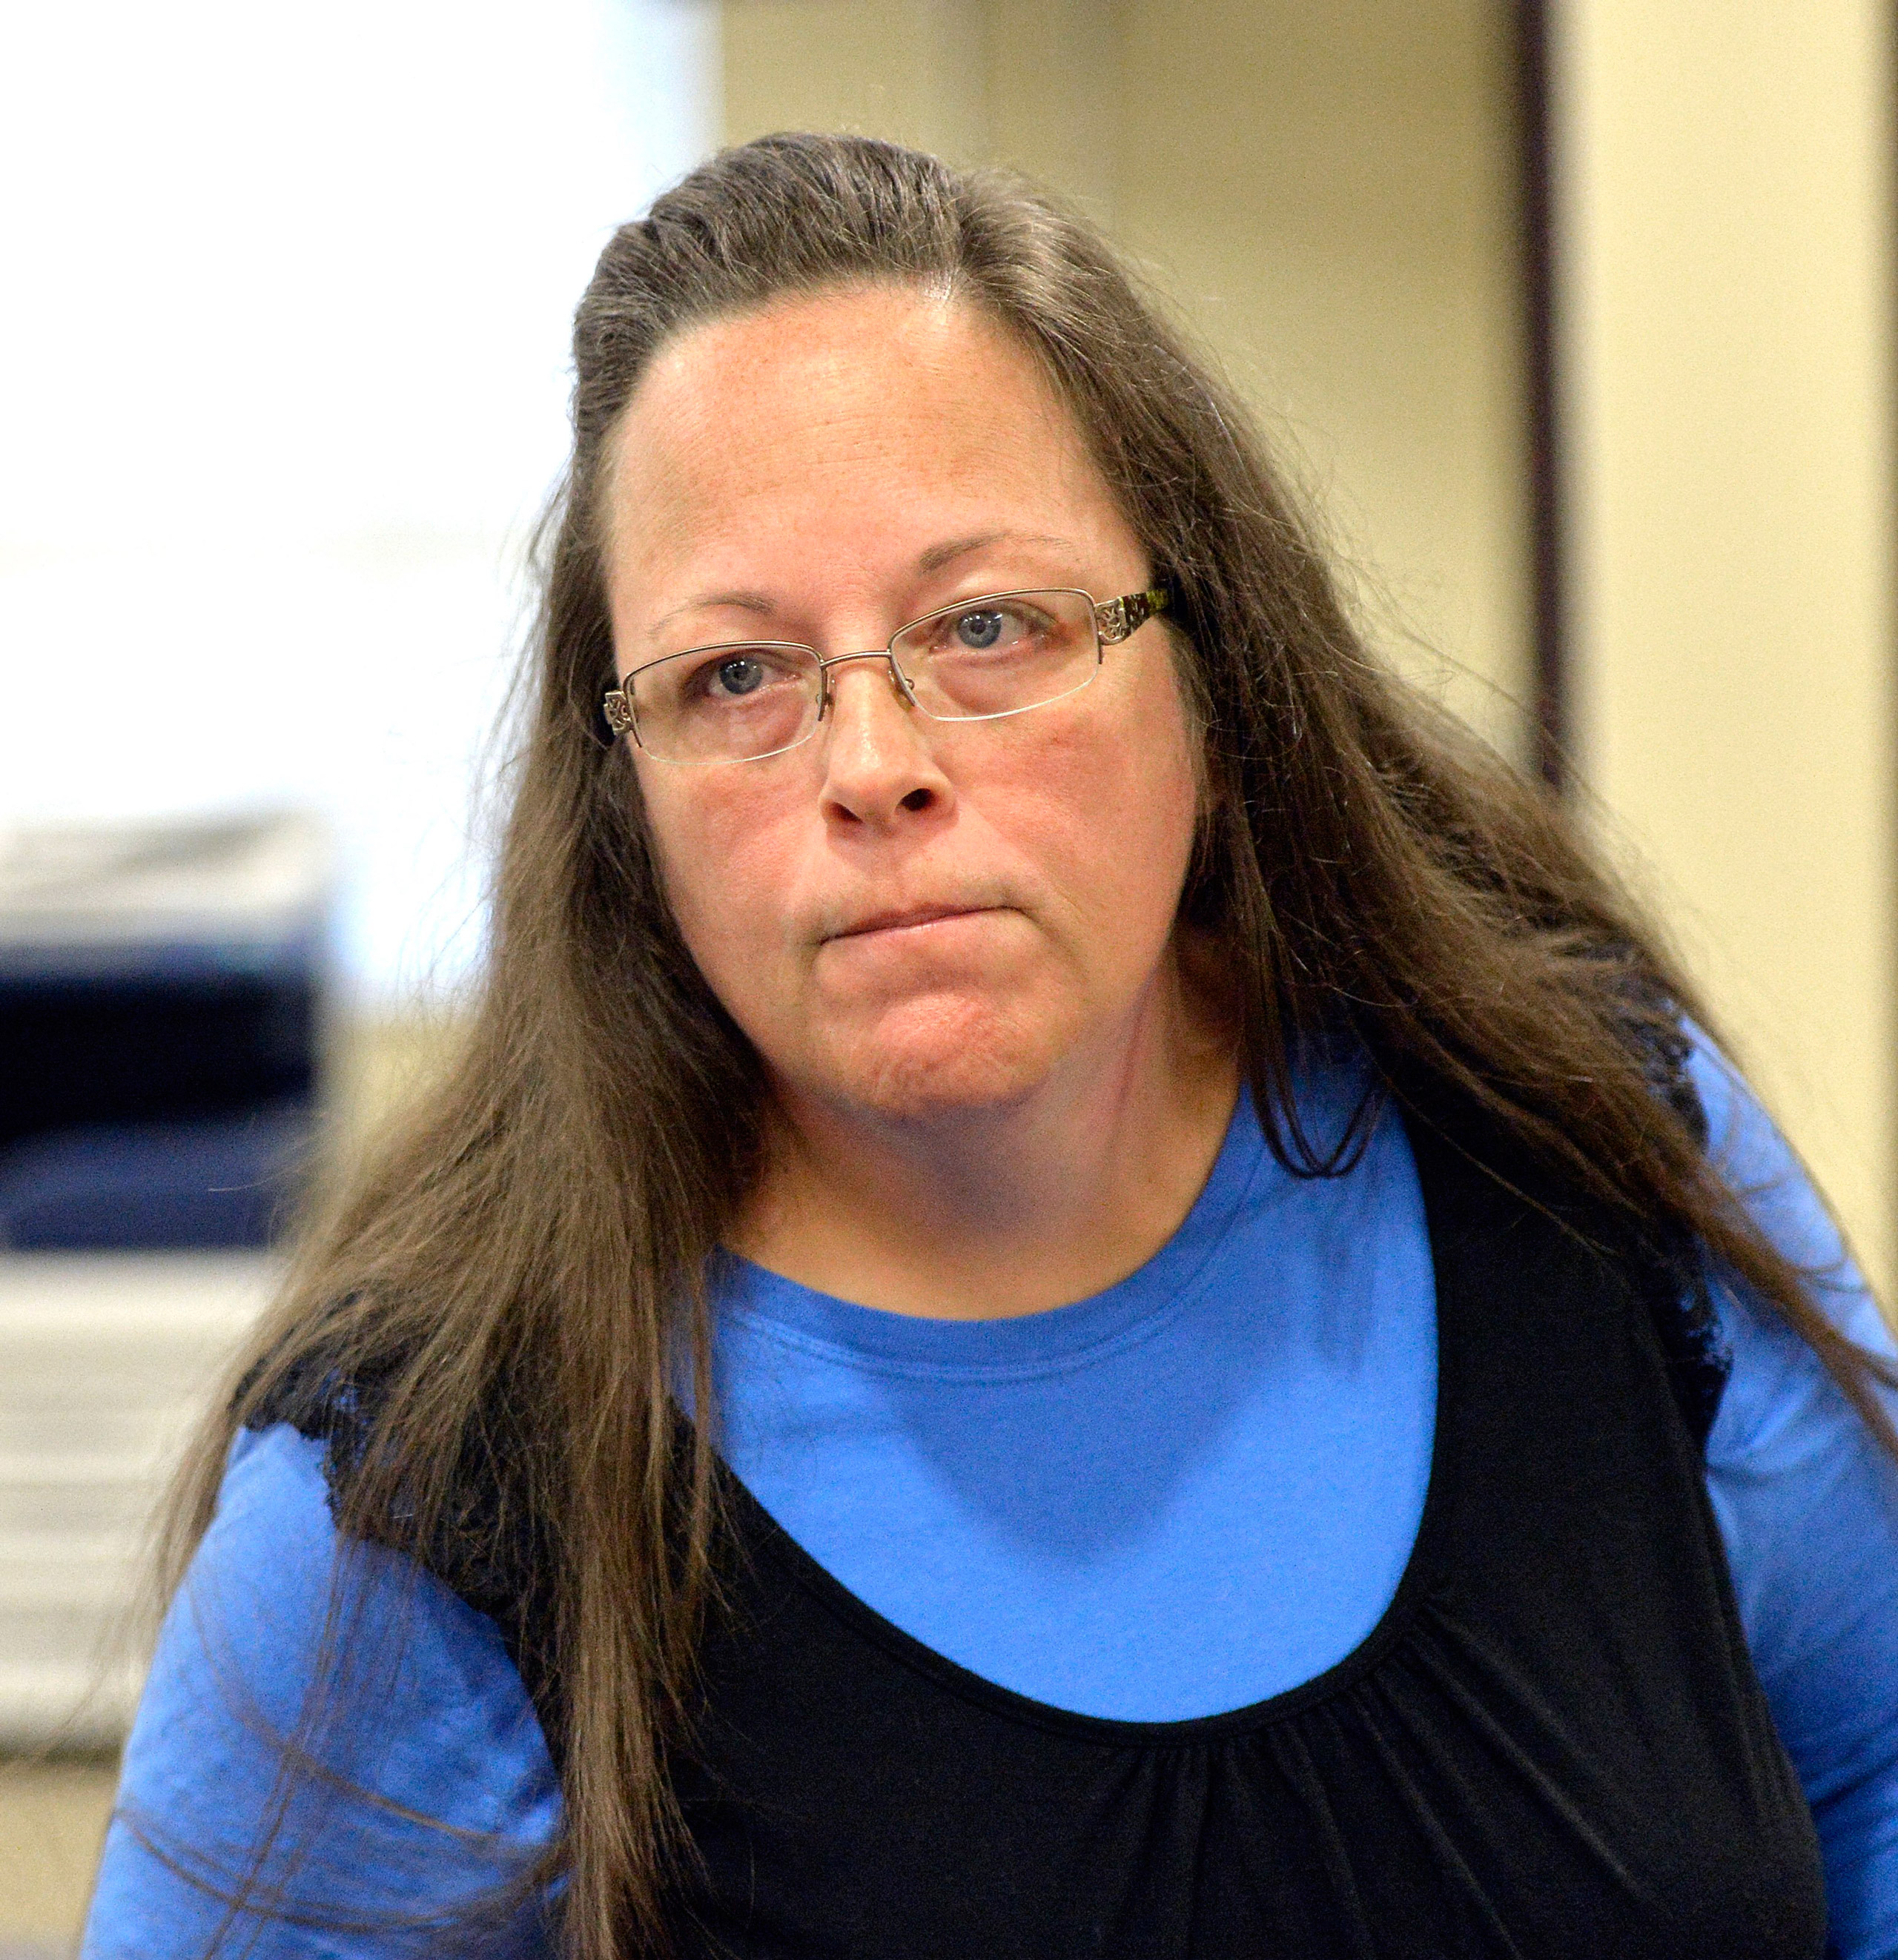 Rowan County Clerk Kim Davis listens to a customer following her office's refusal to issue marriage licenses at the Rowan County Courthouse in Morehead, Ky., on Sept. 1, 2015.